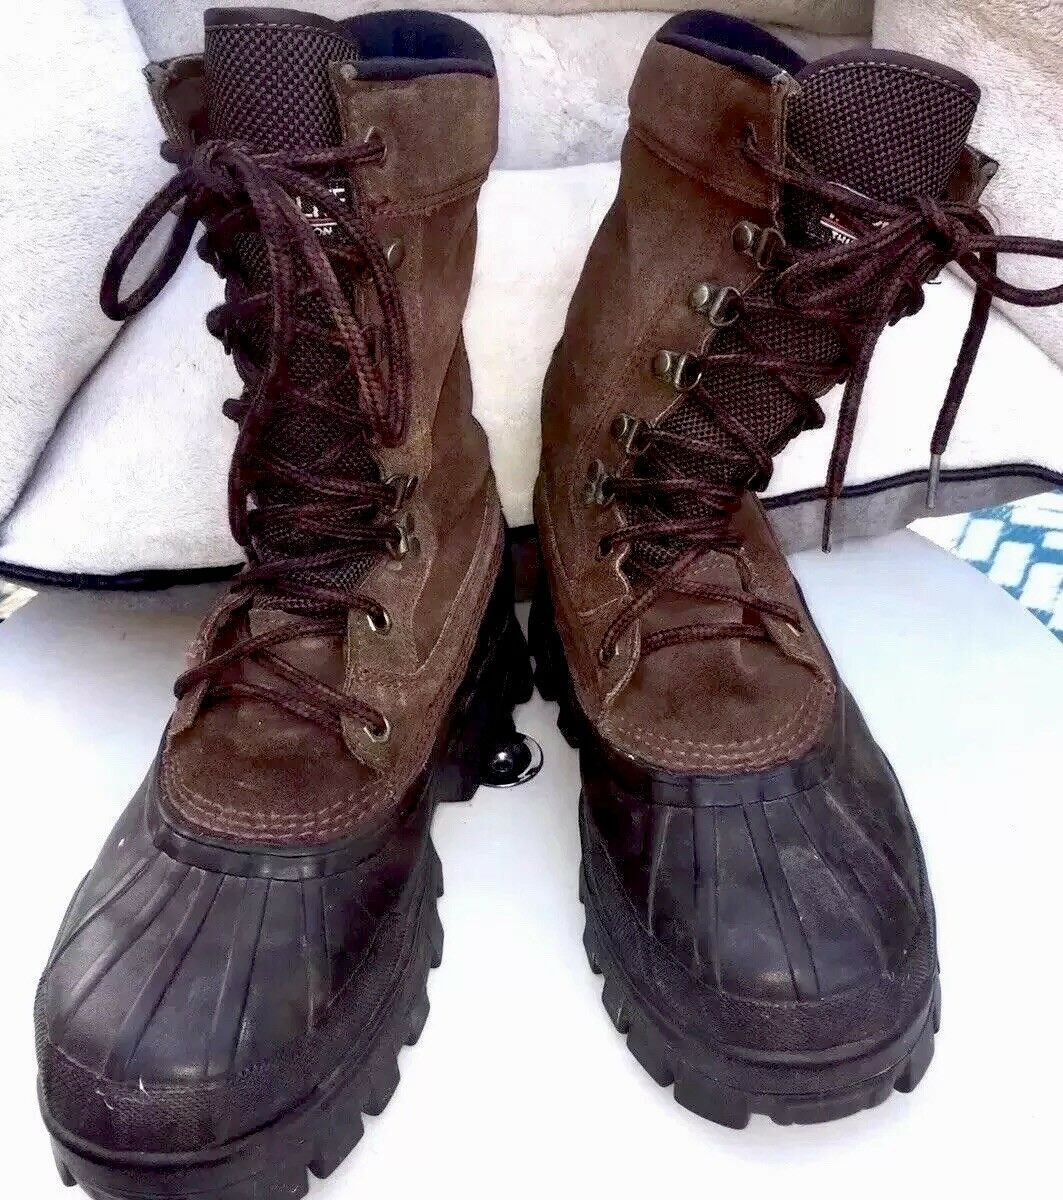 Red Ball Boots By Lacrosse Hunting Hiking Men's 7M Thermolite Warm Insulation